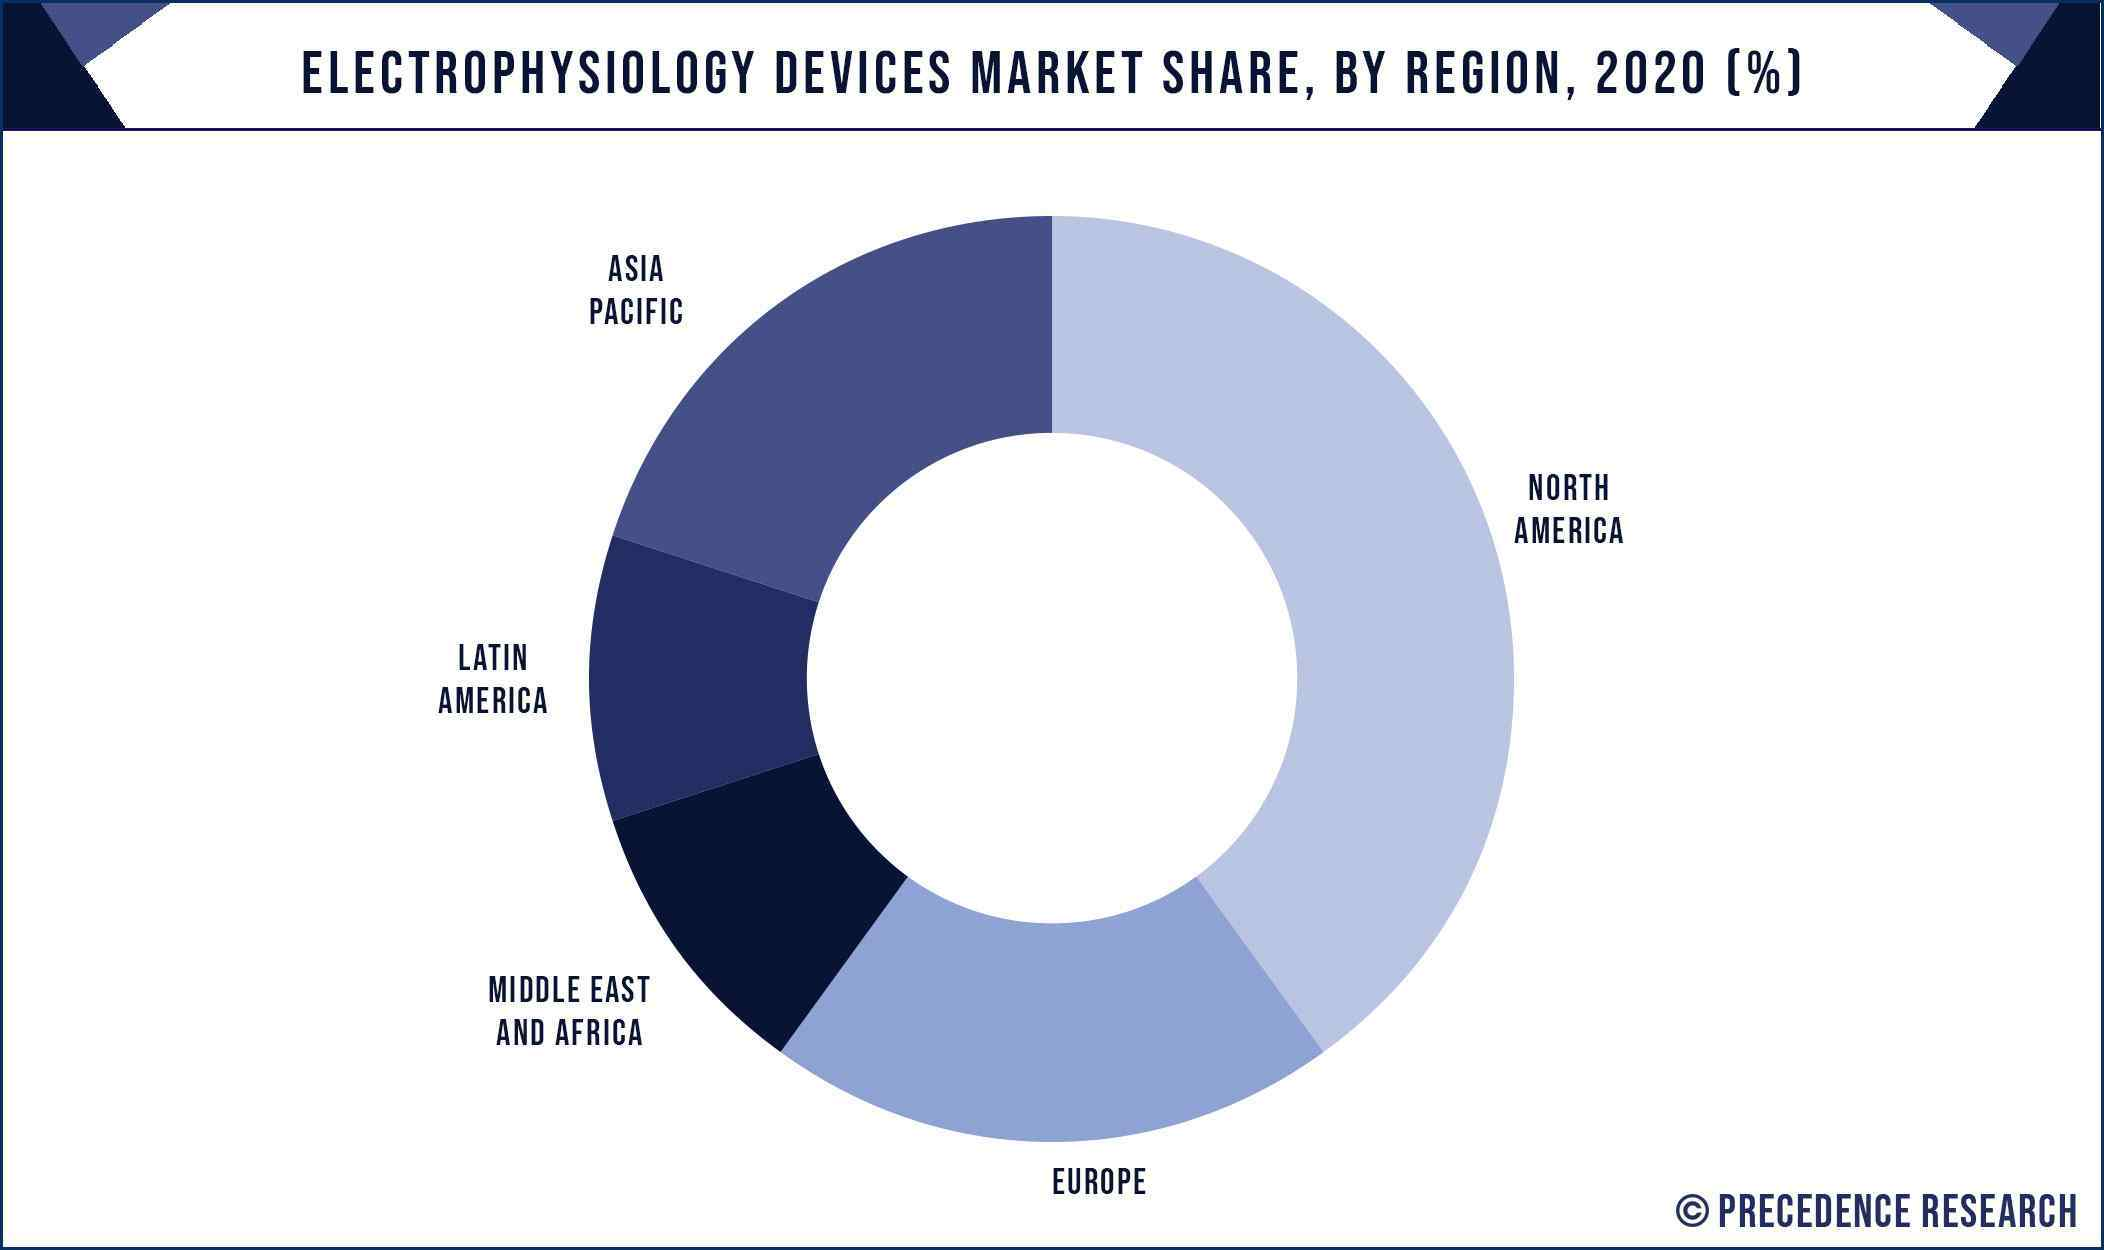 Electrophysiology Devices Market Share, By Region, 2020 (%)